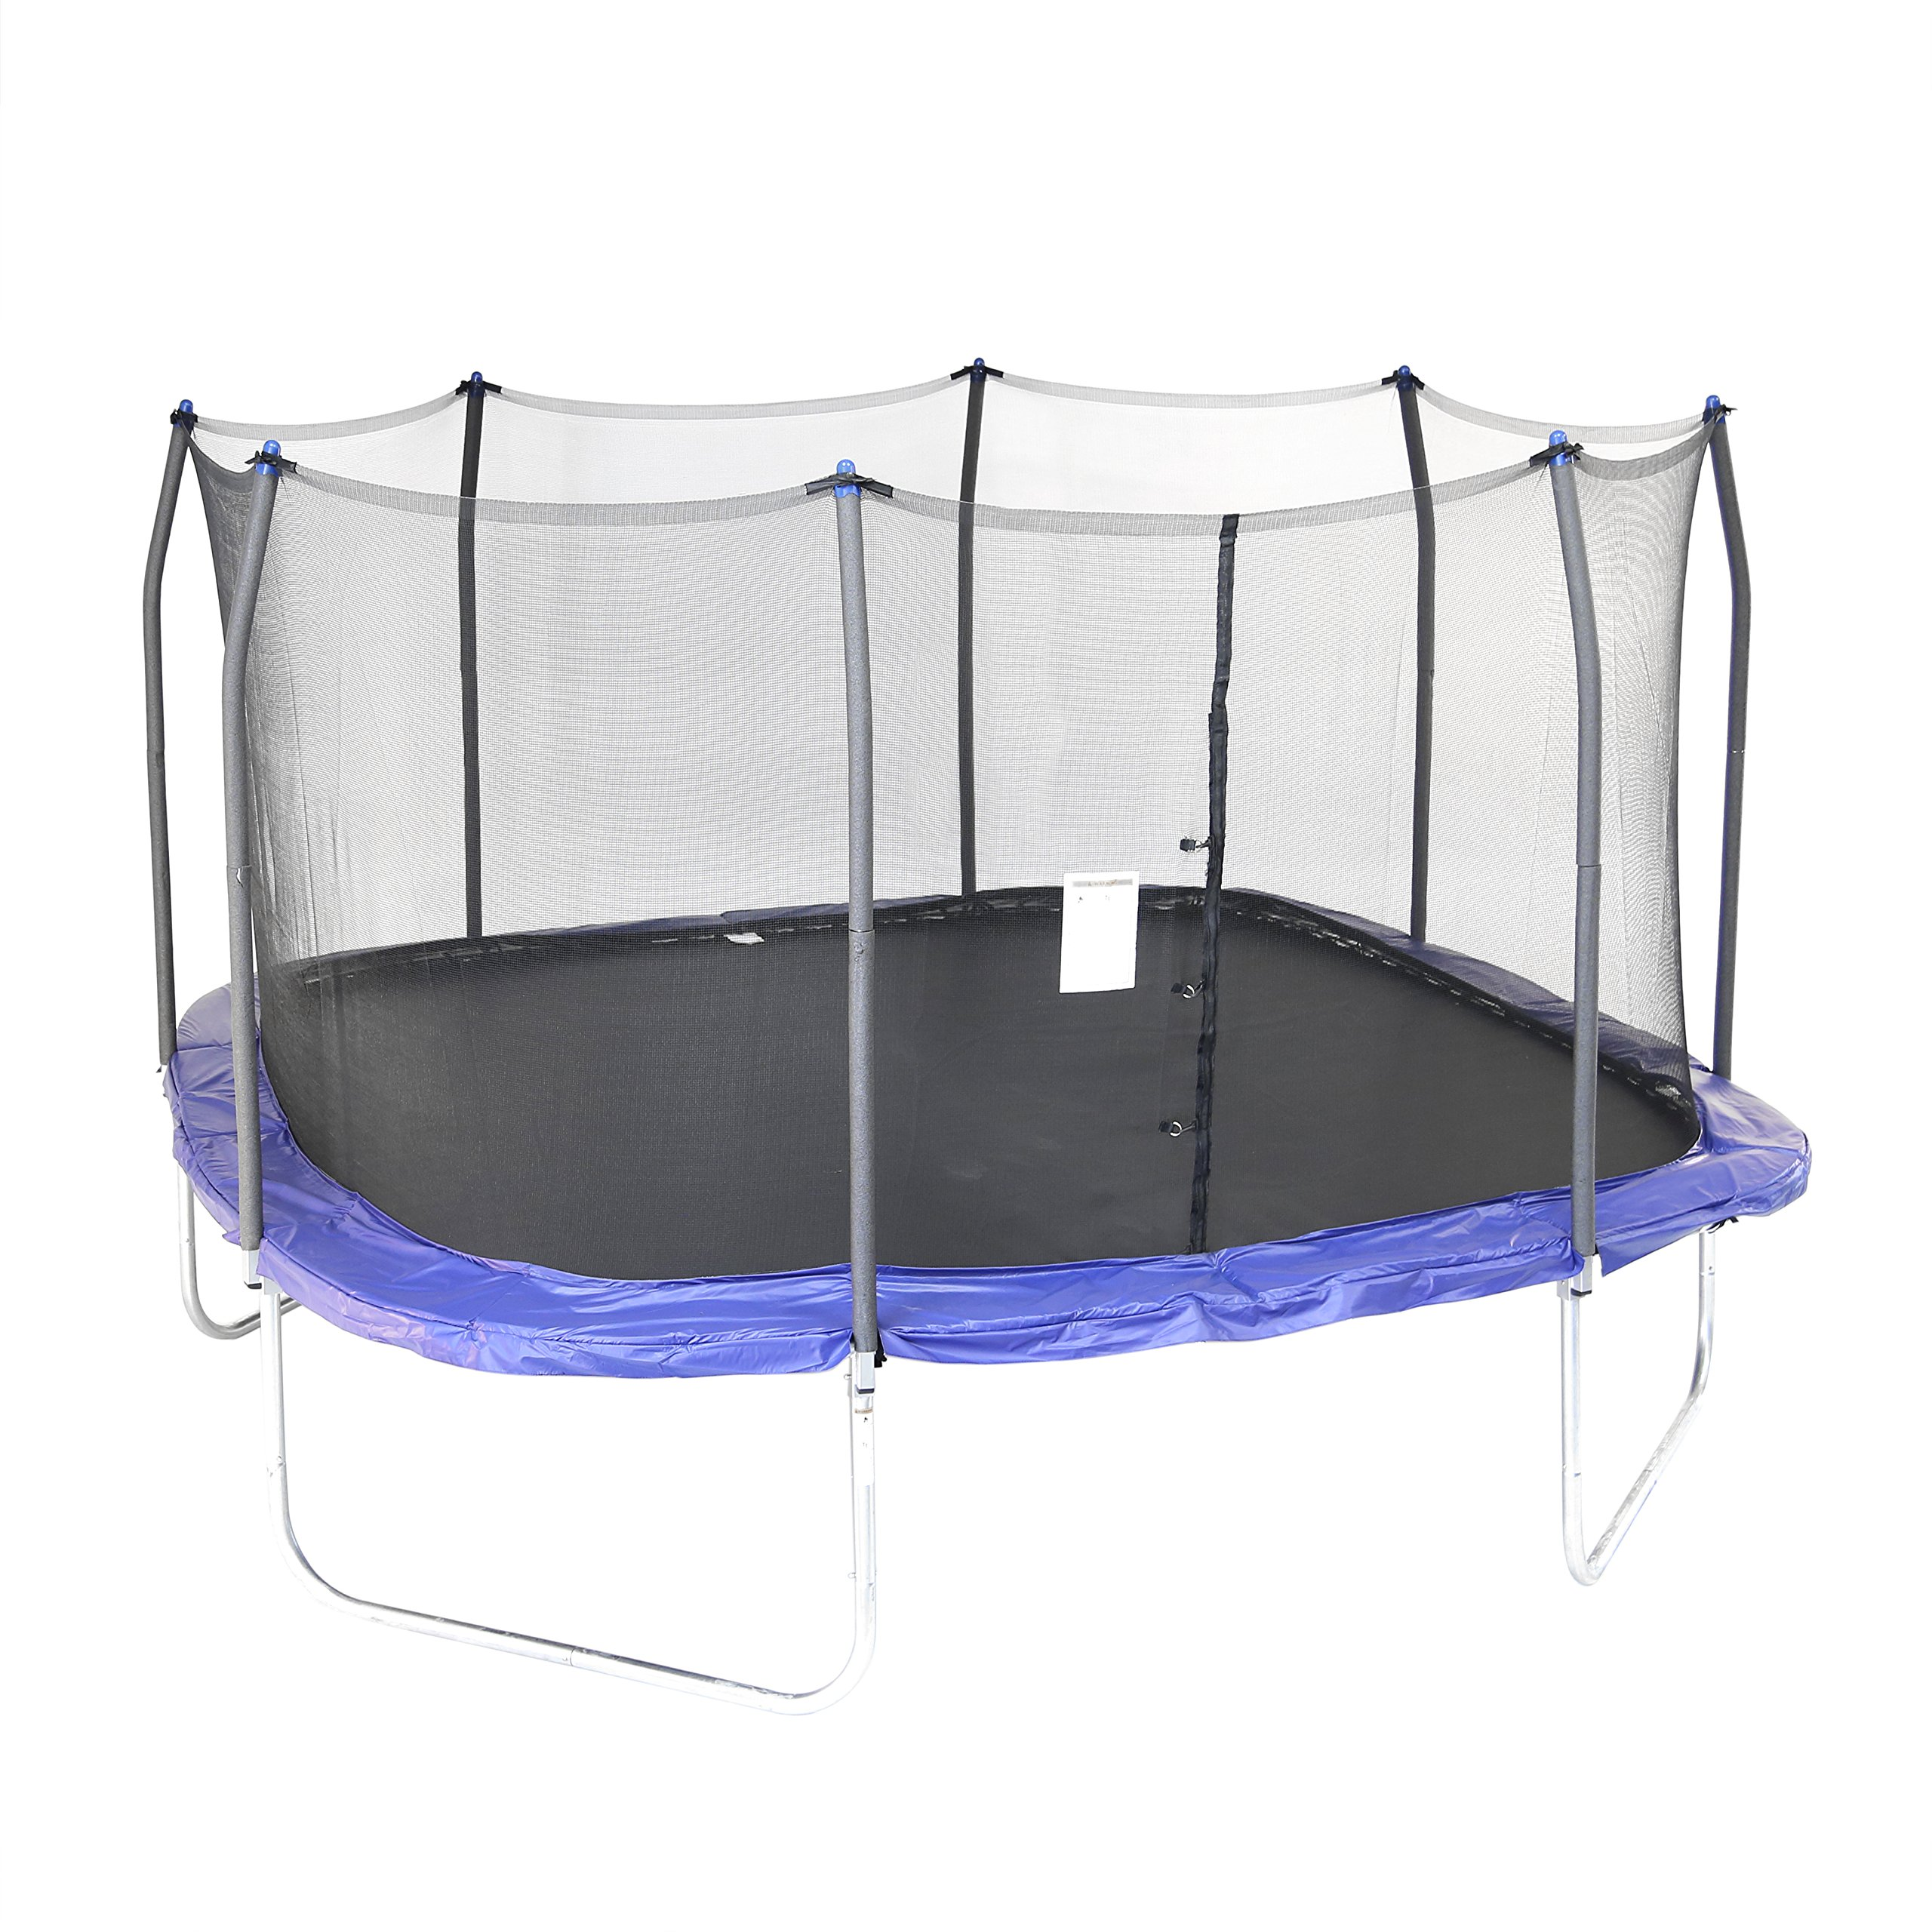 Skywalker Trampolines 14-Foot Square Trampoline with Enclosure - Added Safety Features - Meets or Exceeds ASTM - Made to Last - Extra Jumping Space by Skywalker Trampolines